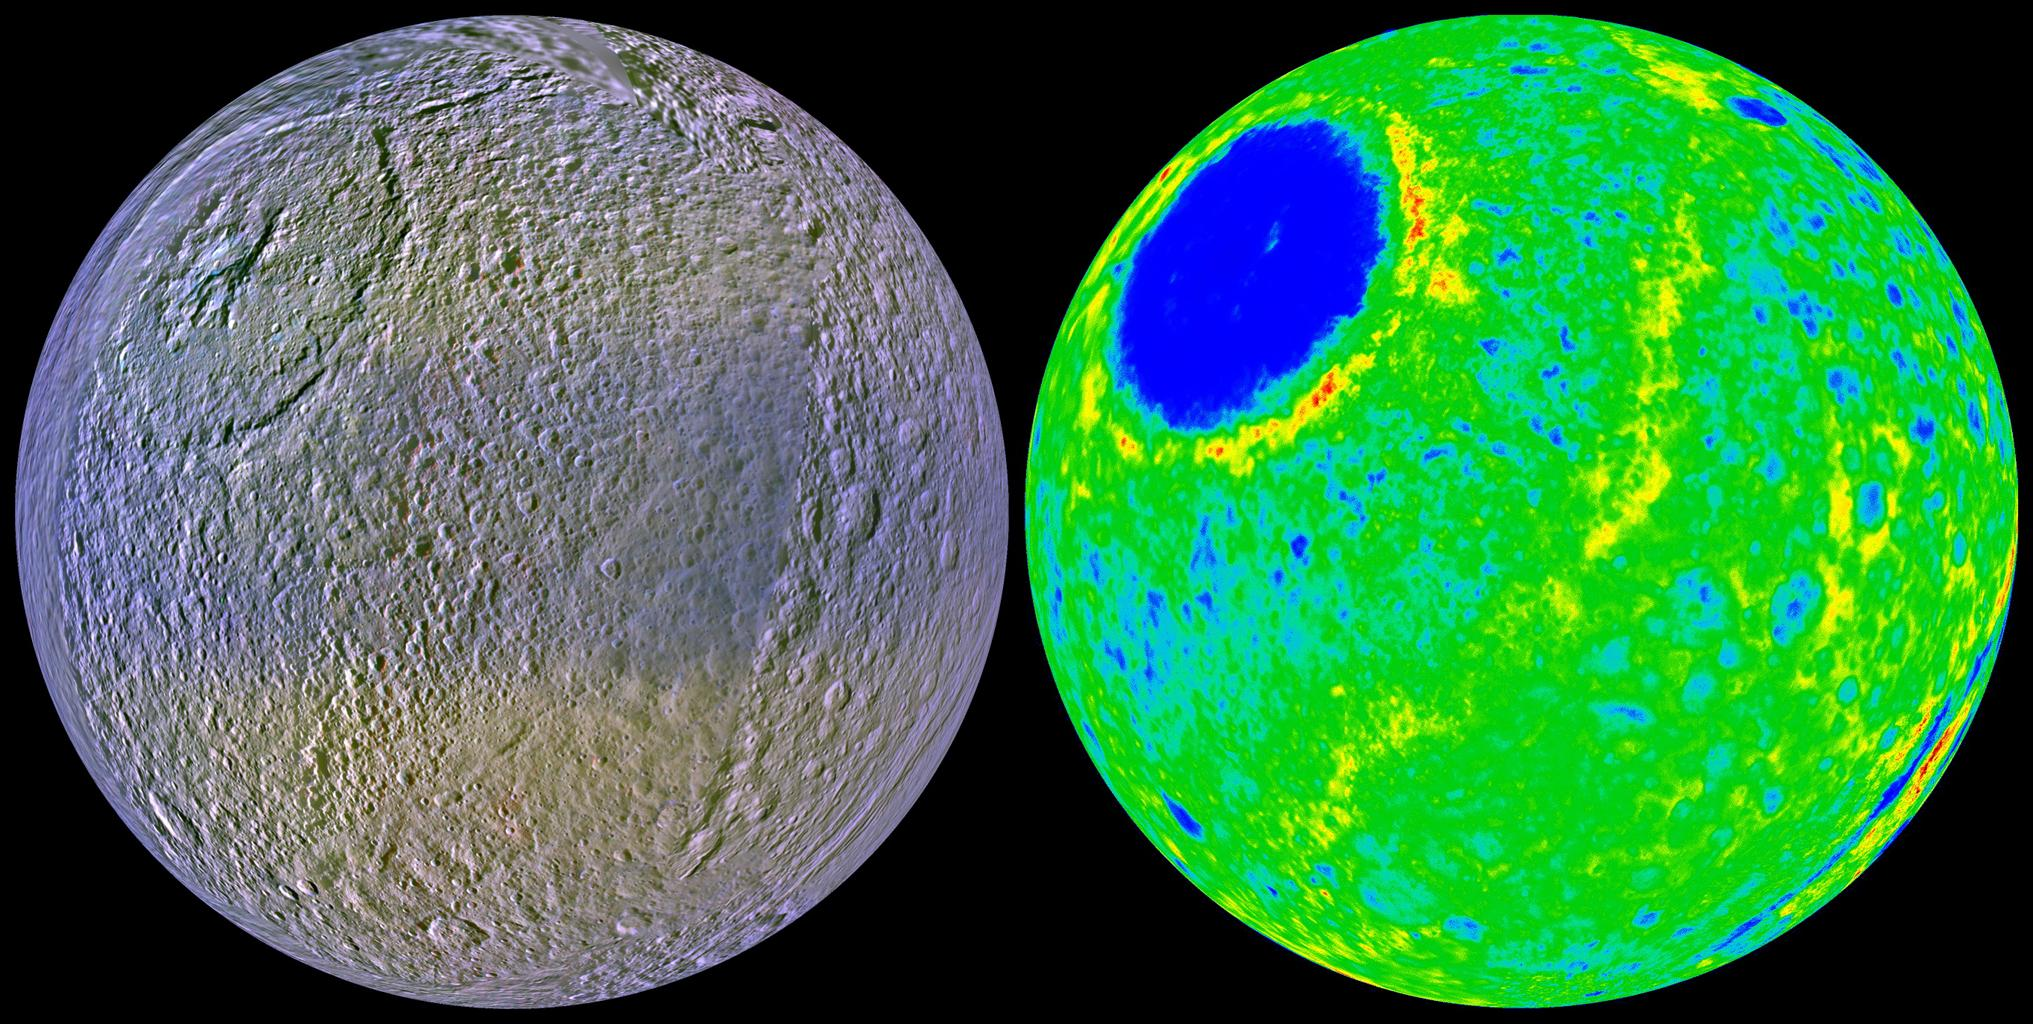 These two views of Tethys show the high-resolution color (left) and the topography (right) of the leading, or forward-facing, hemisphere of this ice-rich satellite. Data for these images is from NASA's Cassini spacecraft.